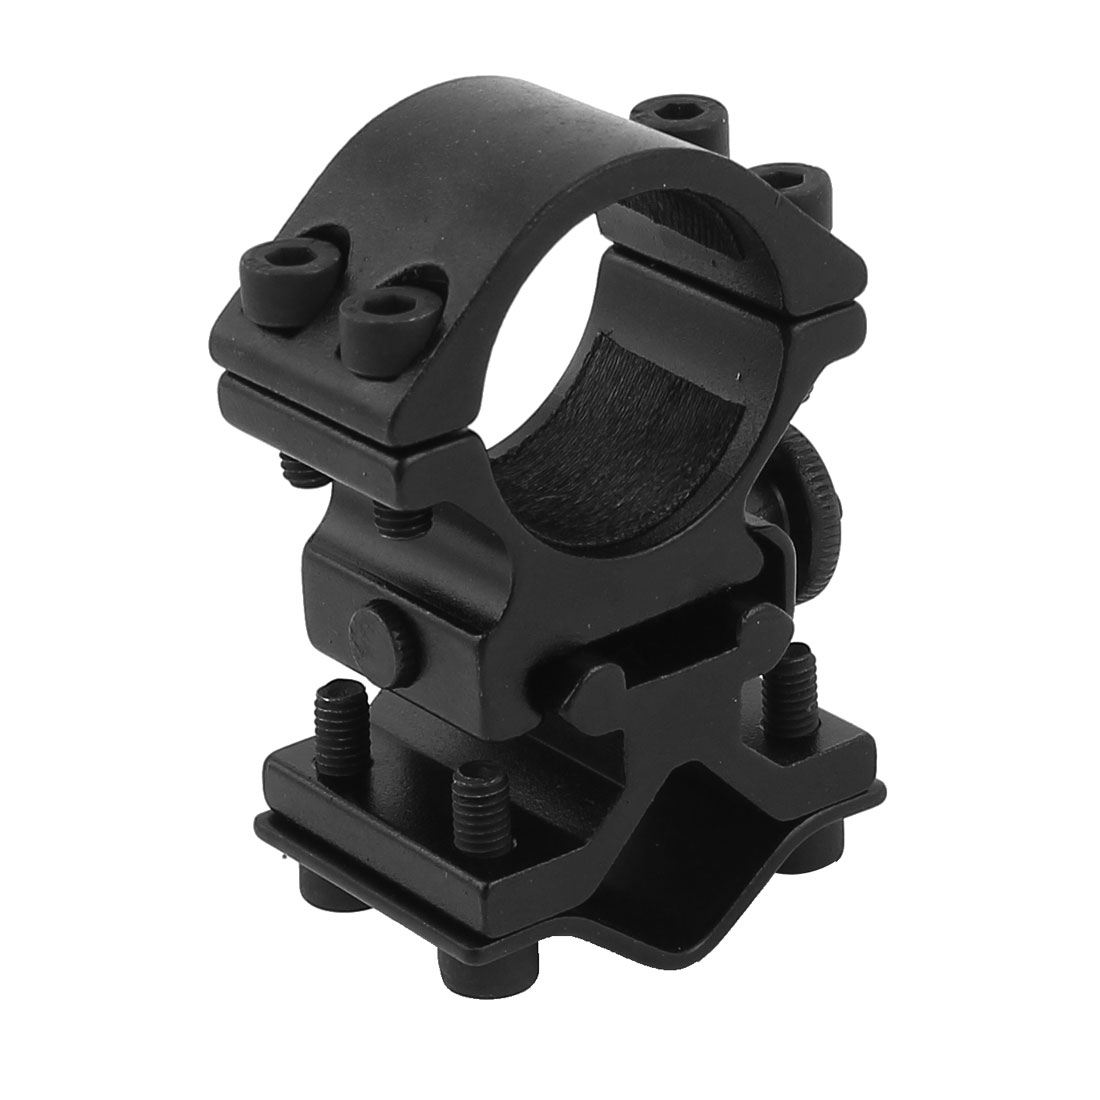 Black LED Flashlight Torch Mount Alloy Holder Clip w Hex Key